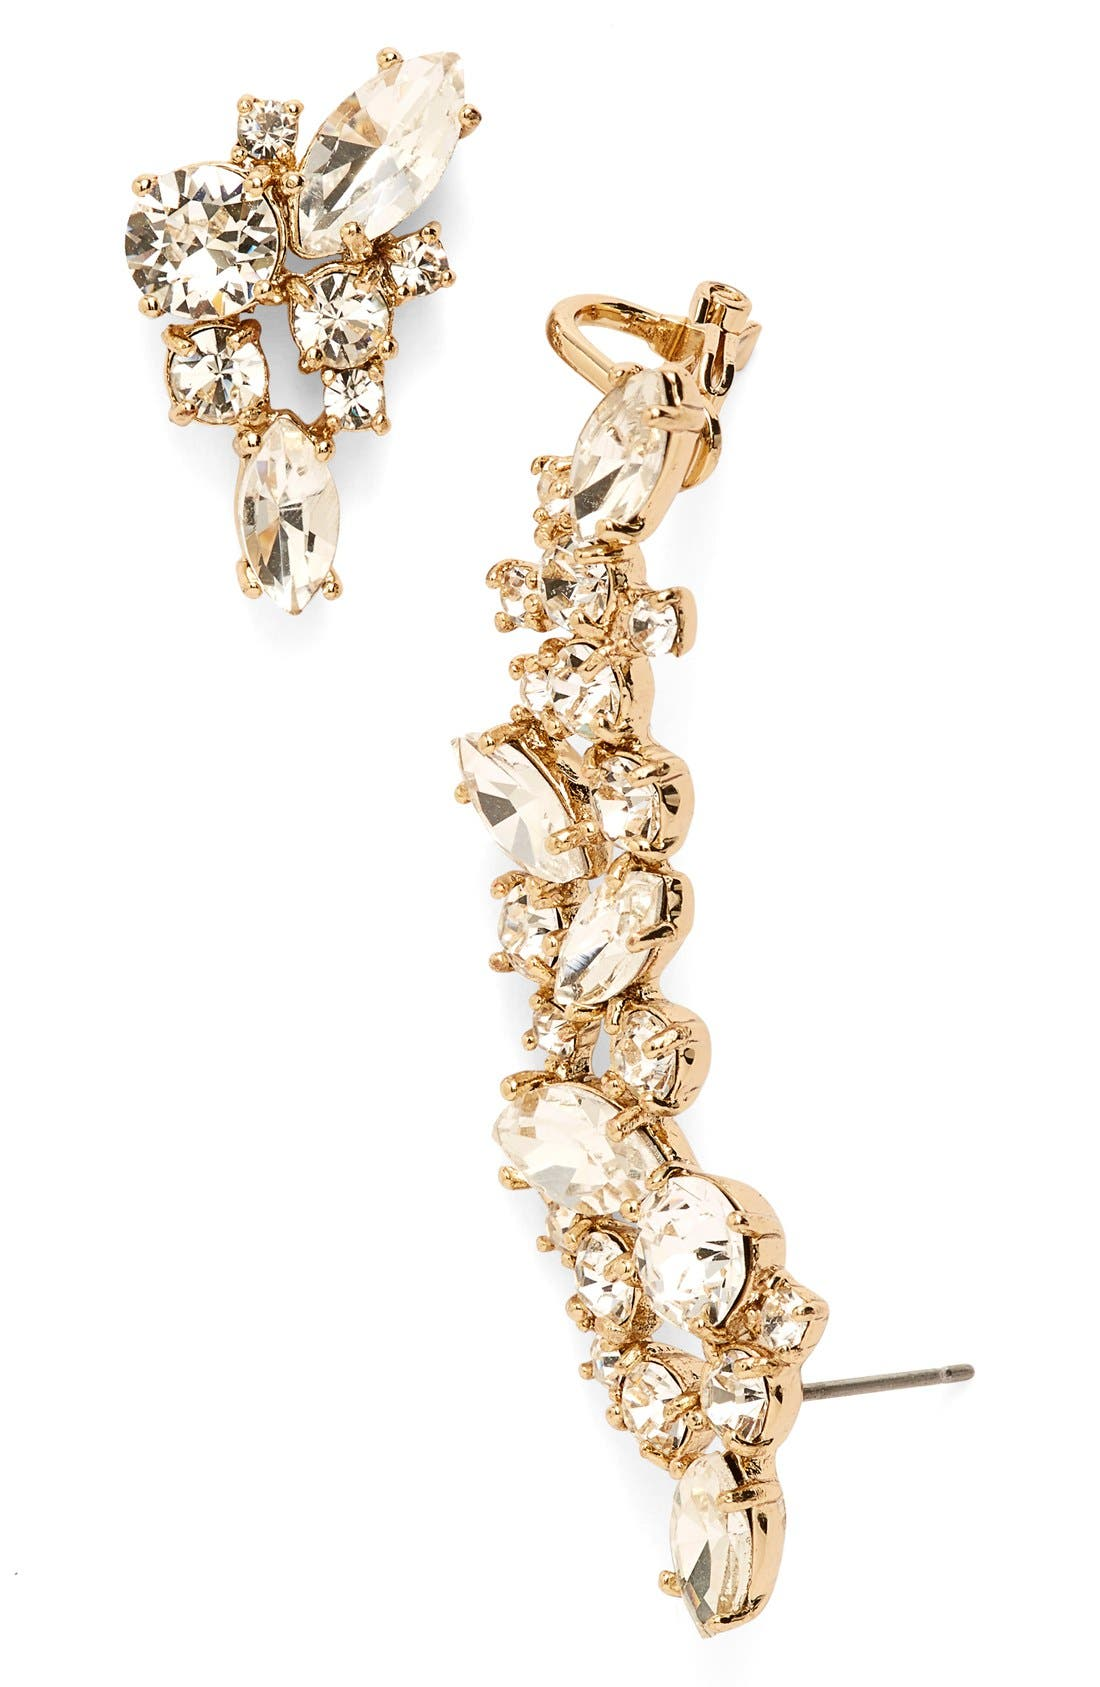 Main Image - Marchesa 'Drama' Crystal Ear Crawler & Stud Earring